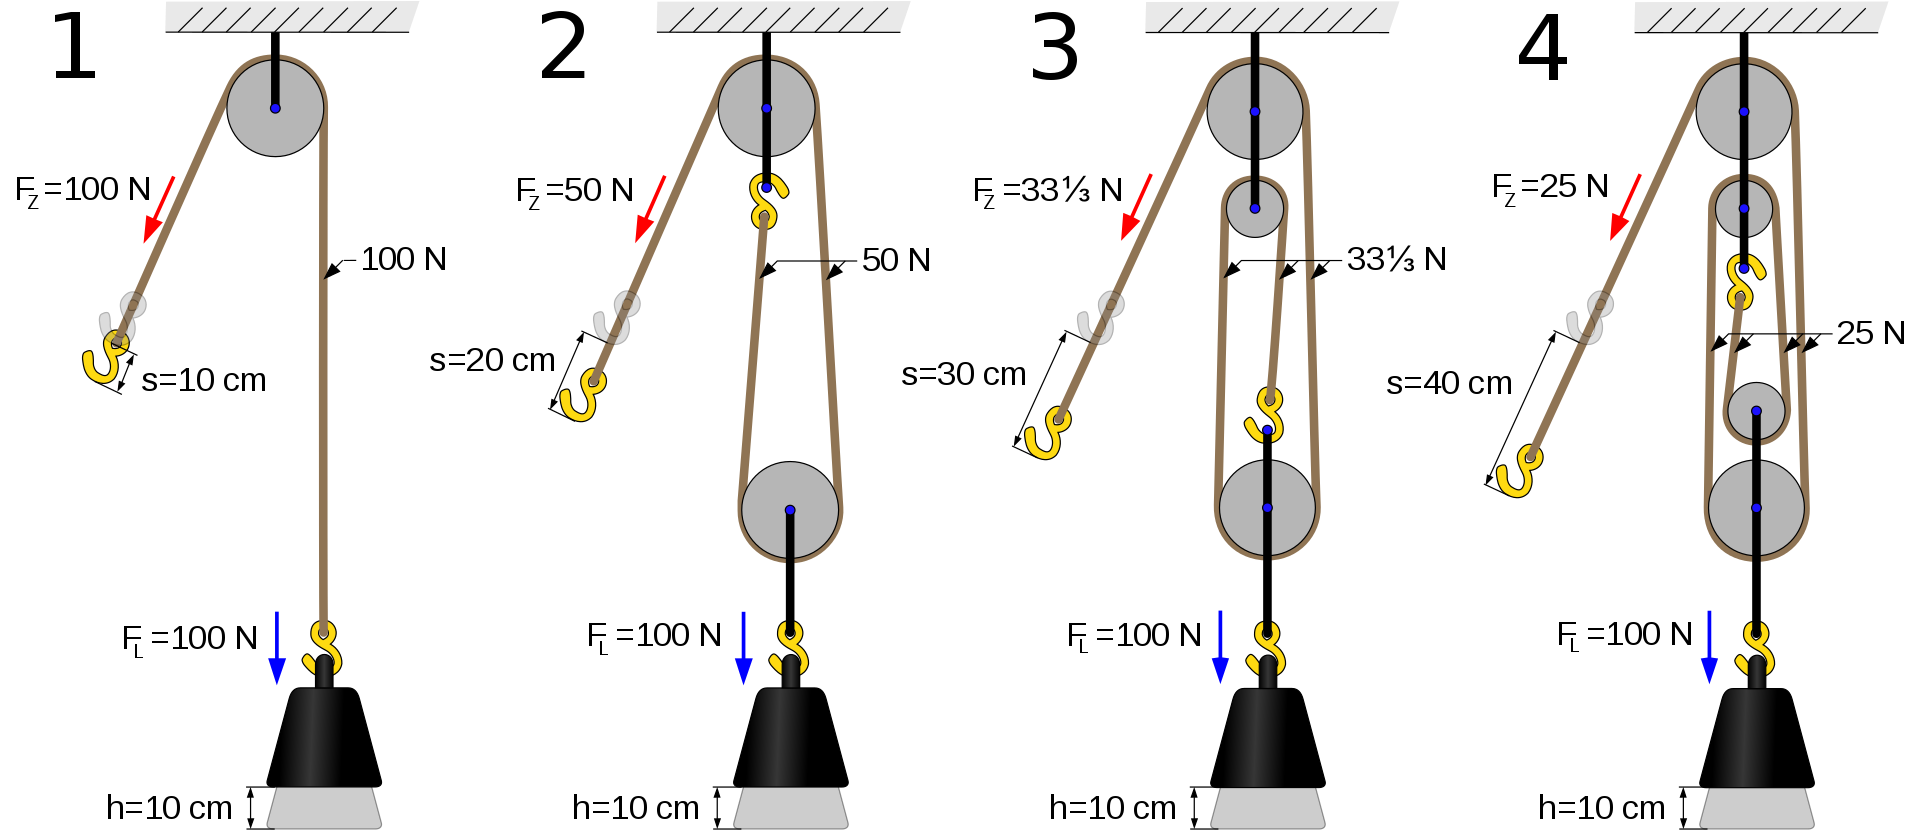 medium resolution of examples of rope and pulley systems illustrating mechanical advantage block and tackle pulley